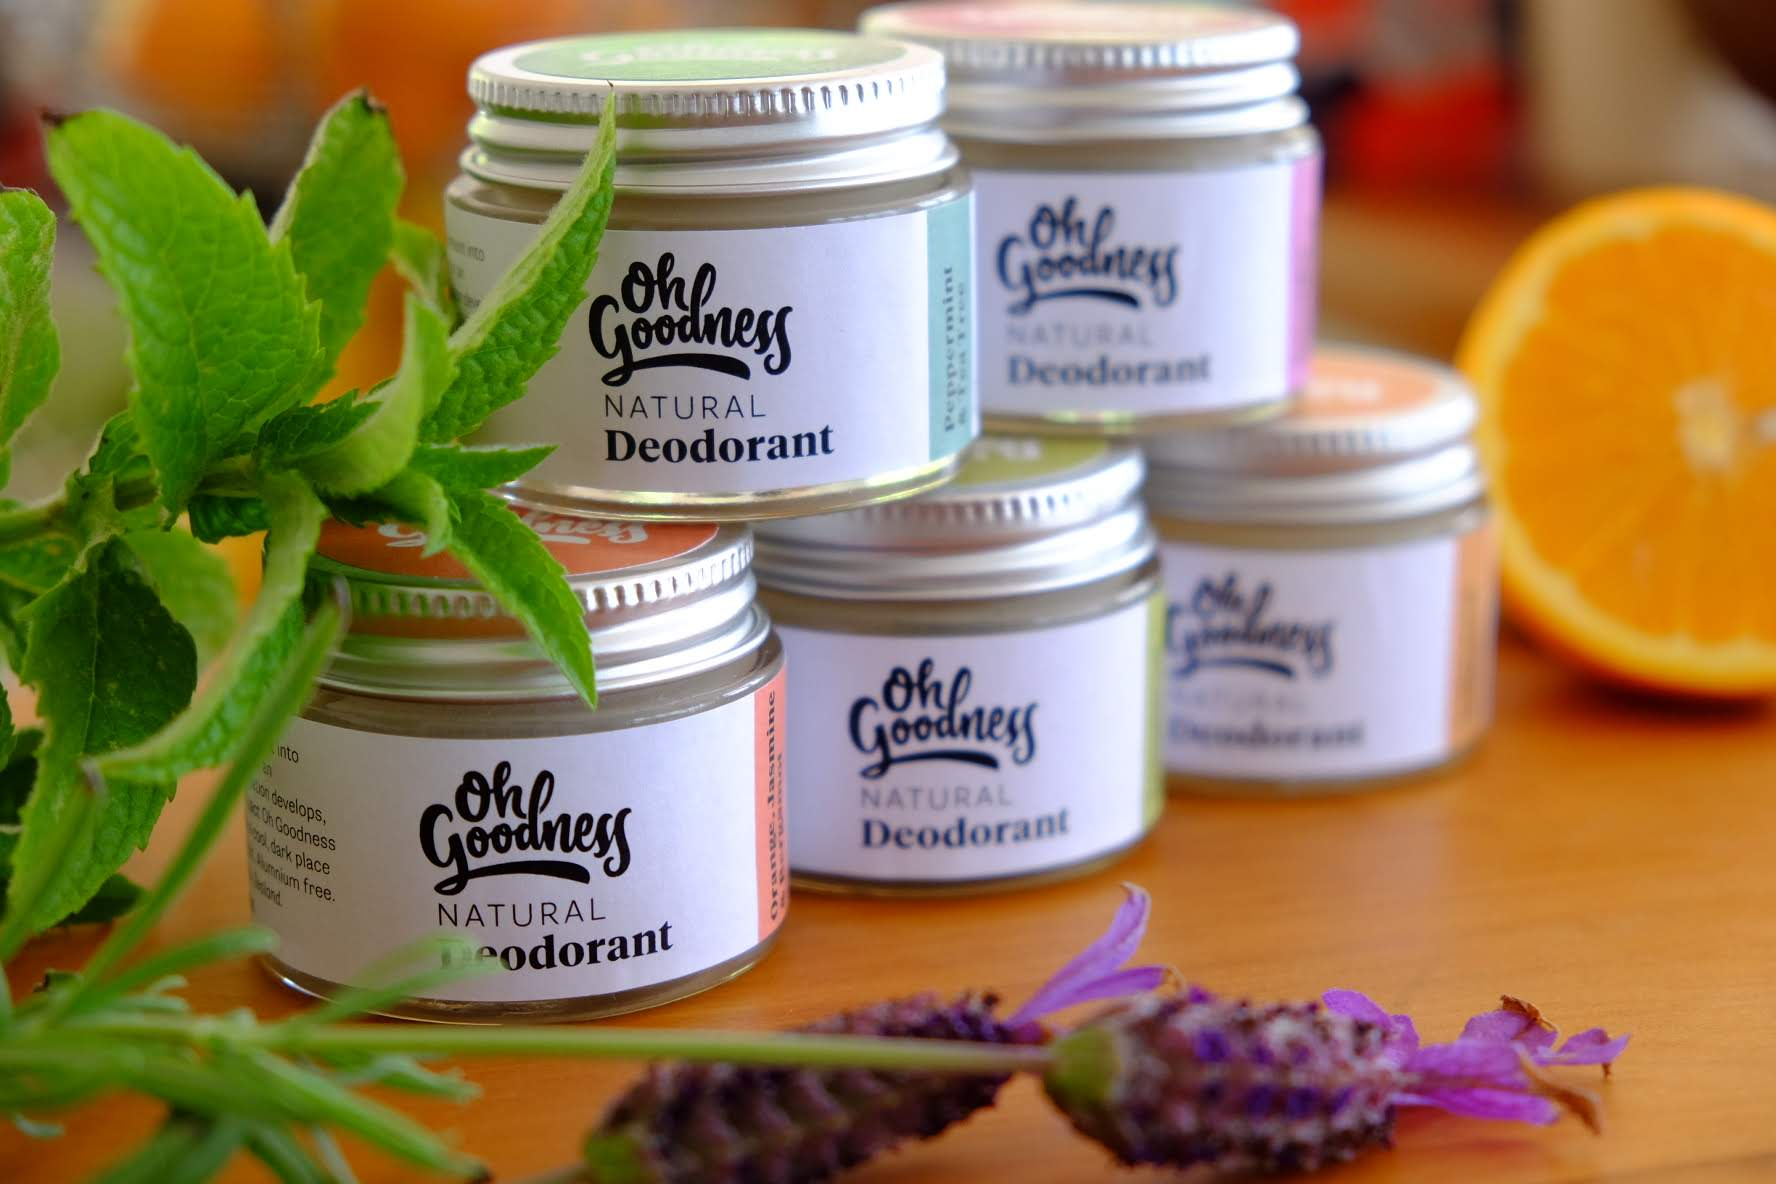 oh goodness natural deodorants